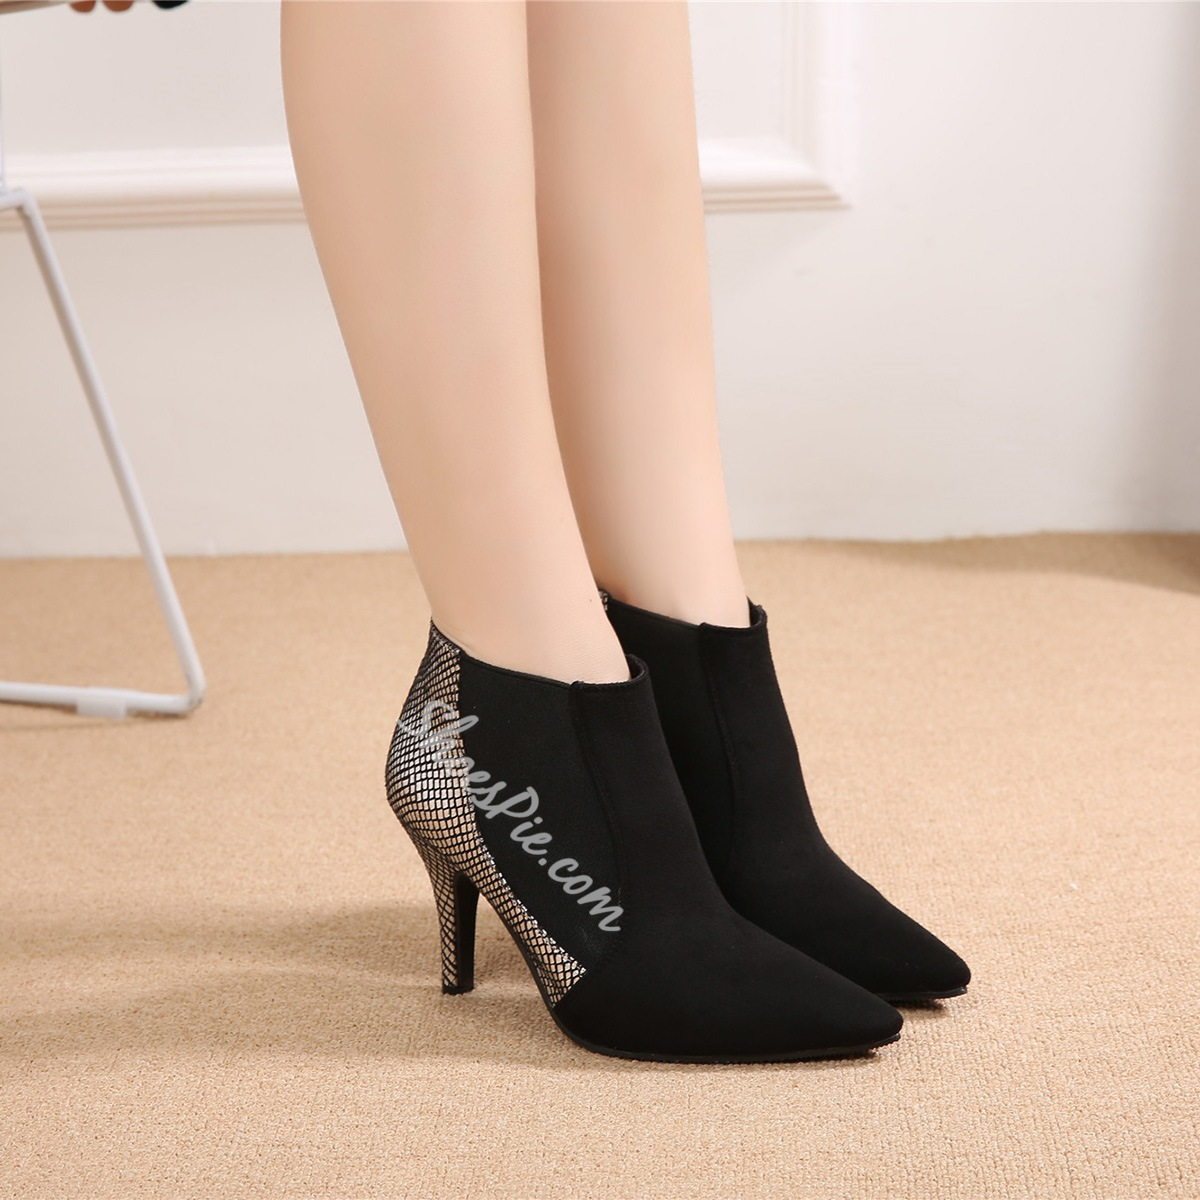 Black Stiletto Heels Slip-On Boots